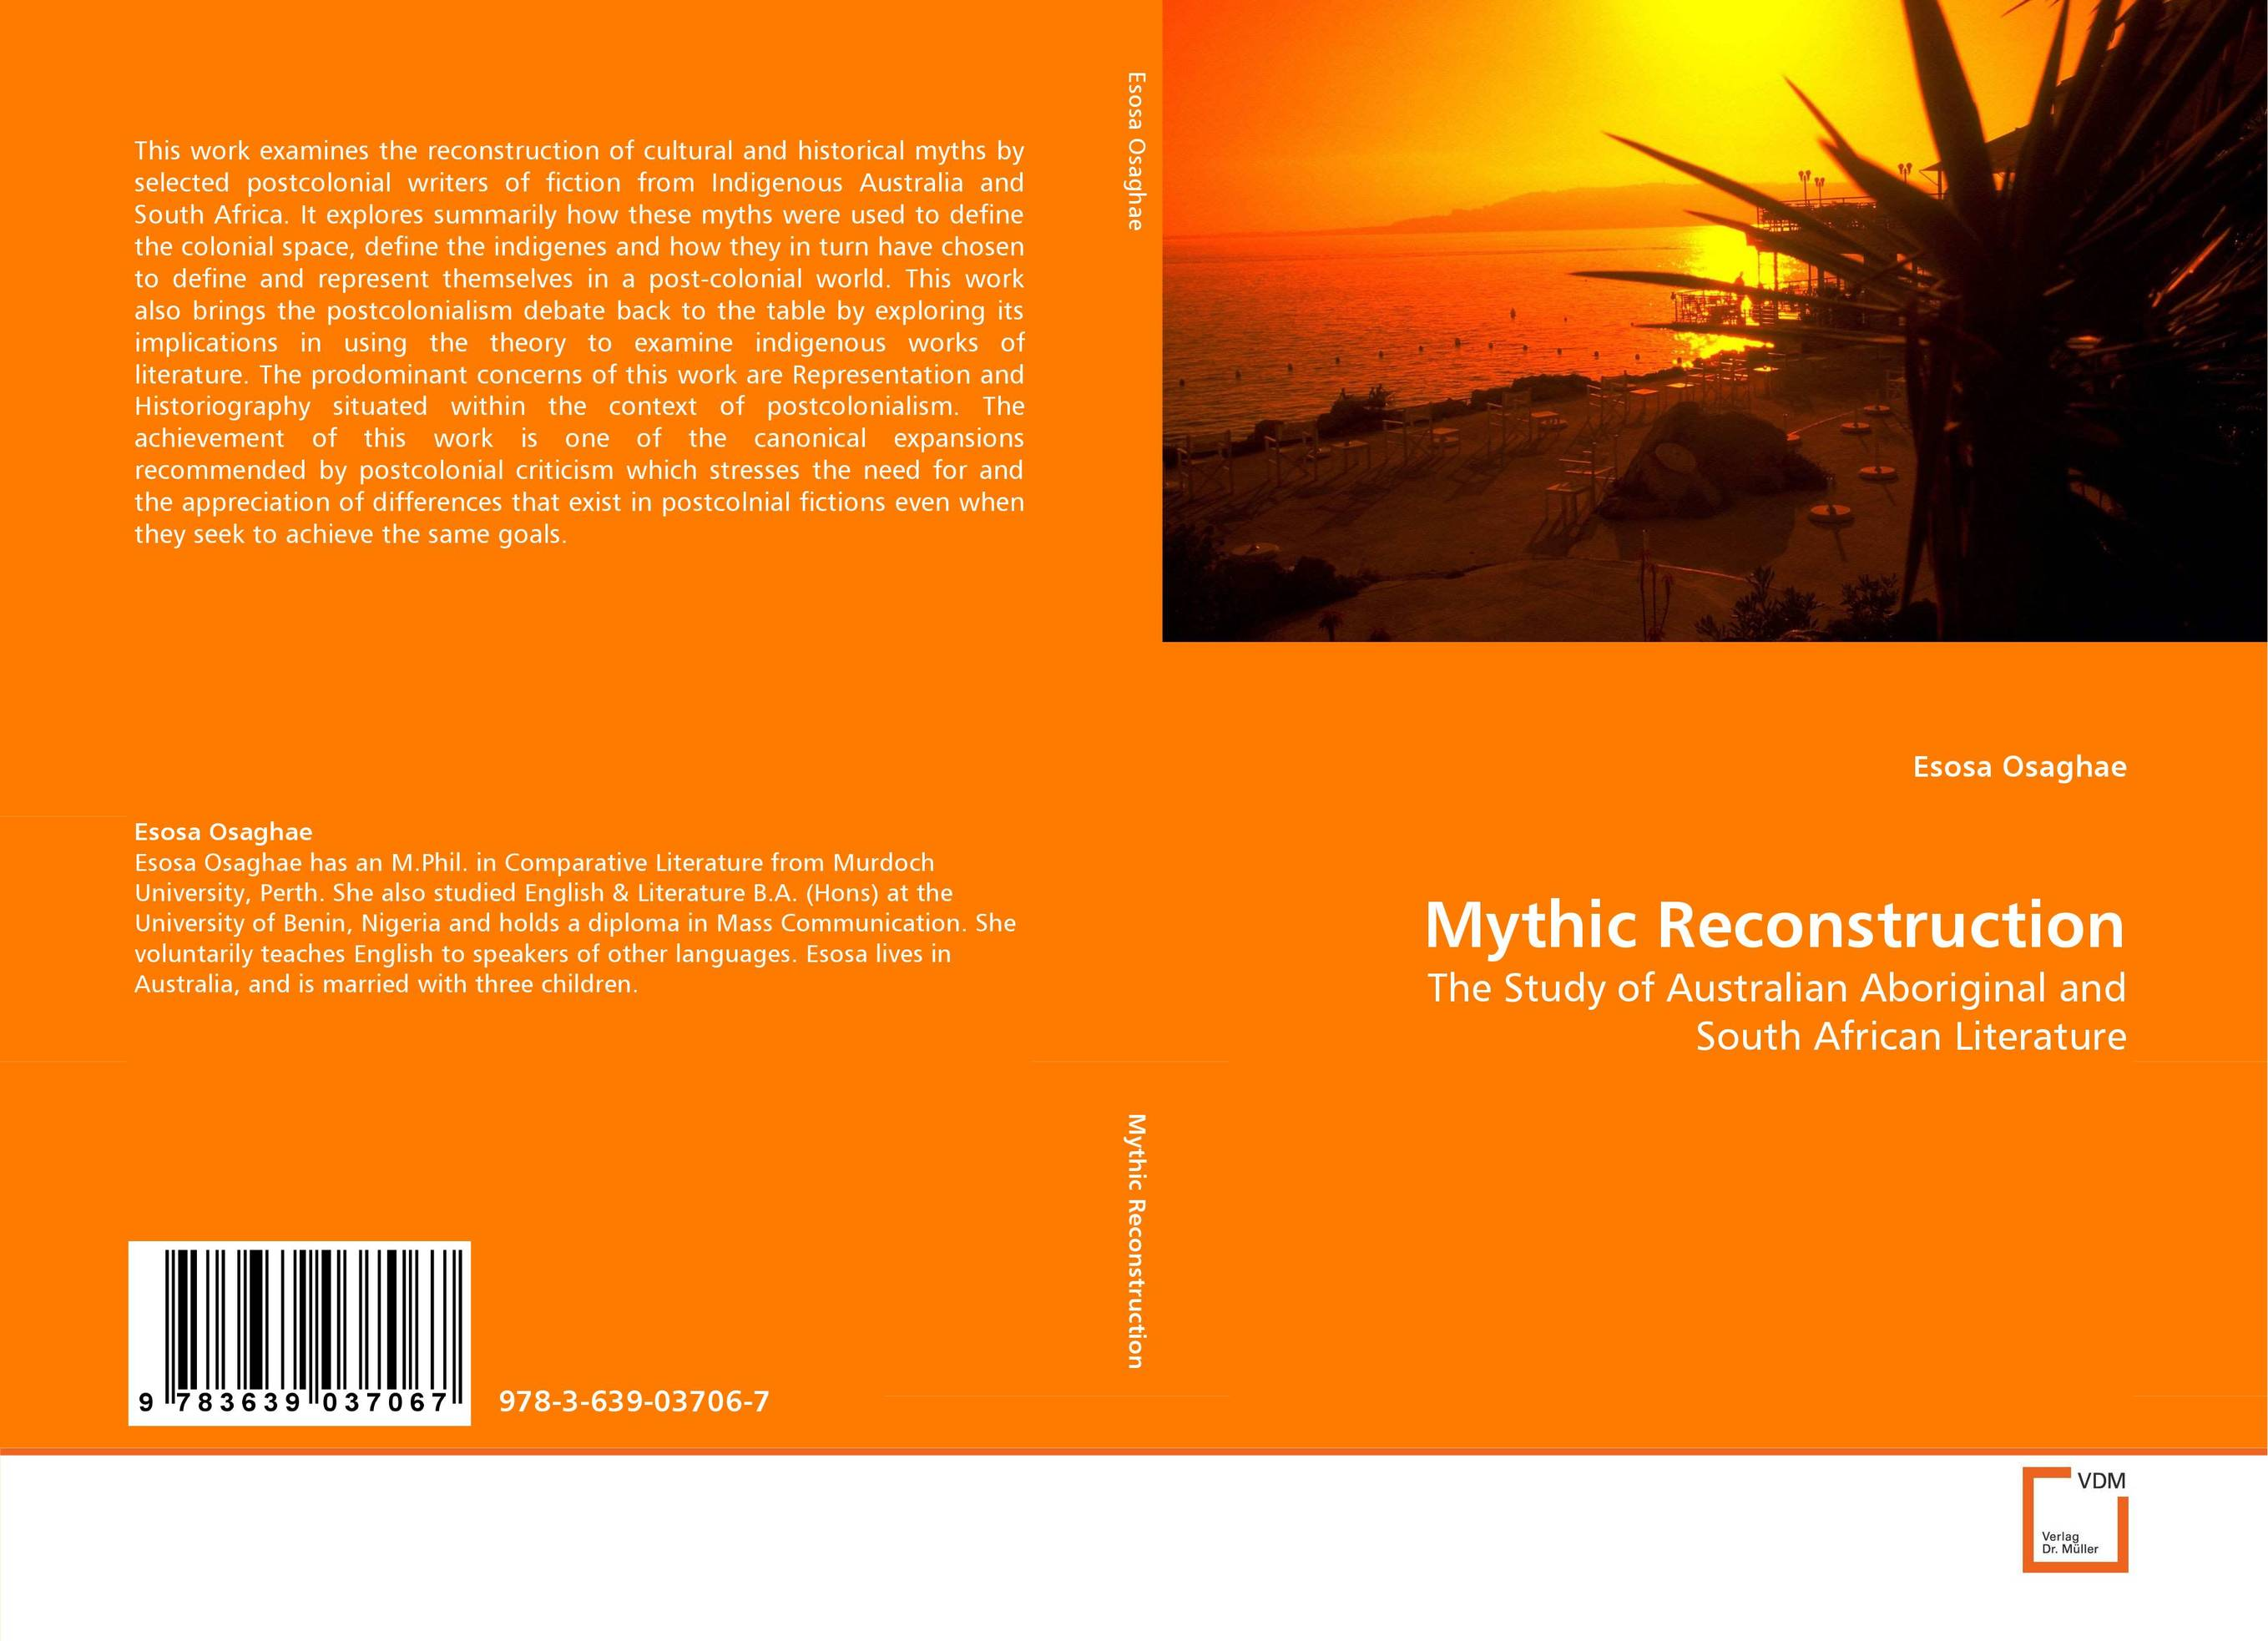 Mythic Reconstruction cultural and linguistic hybridity in postcolonial text